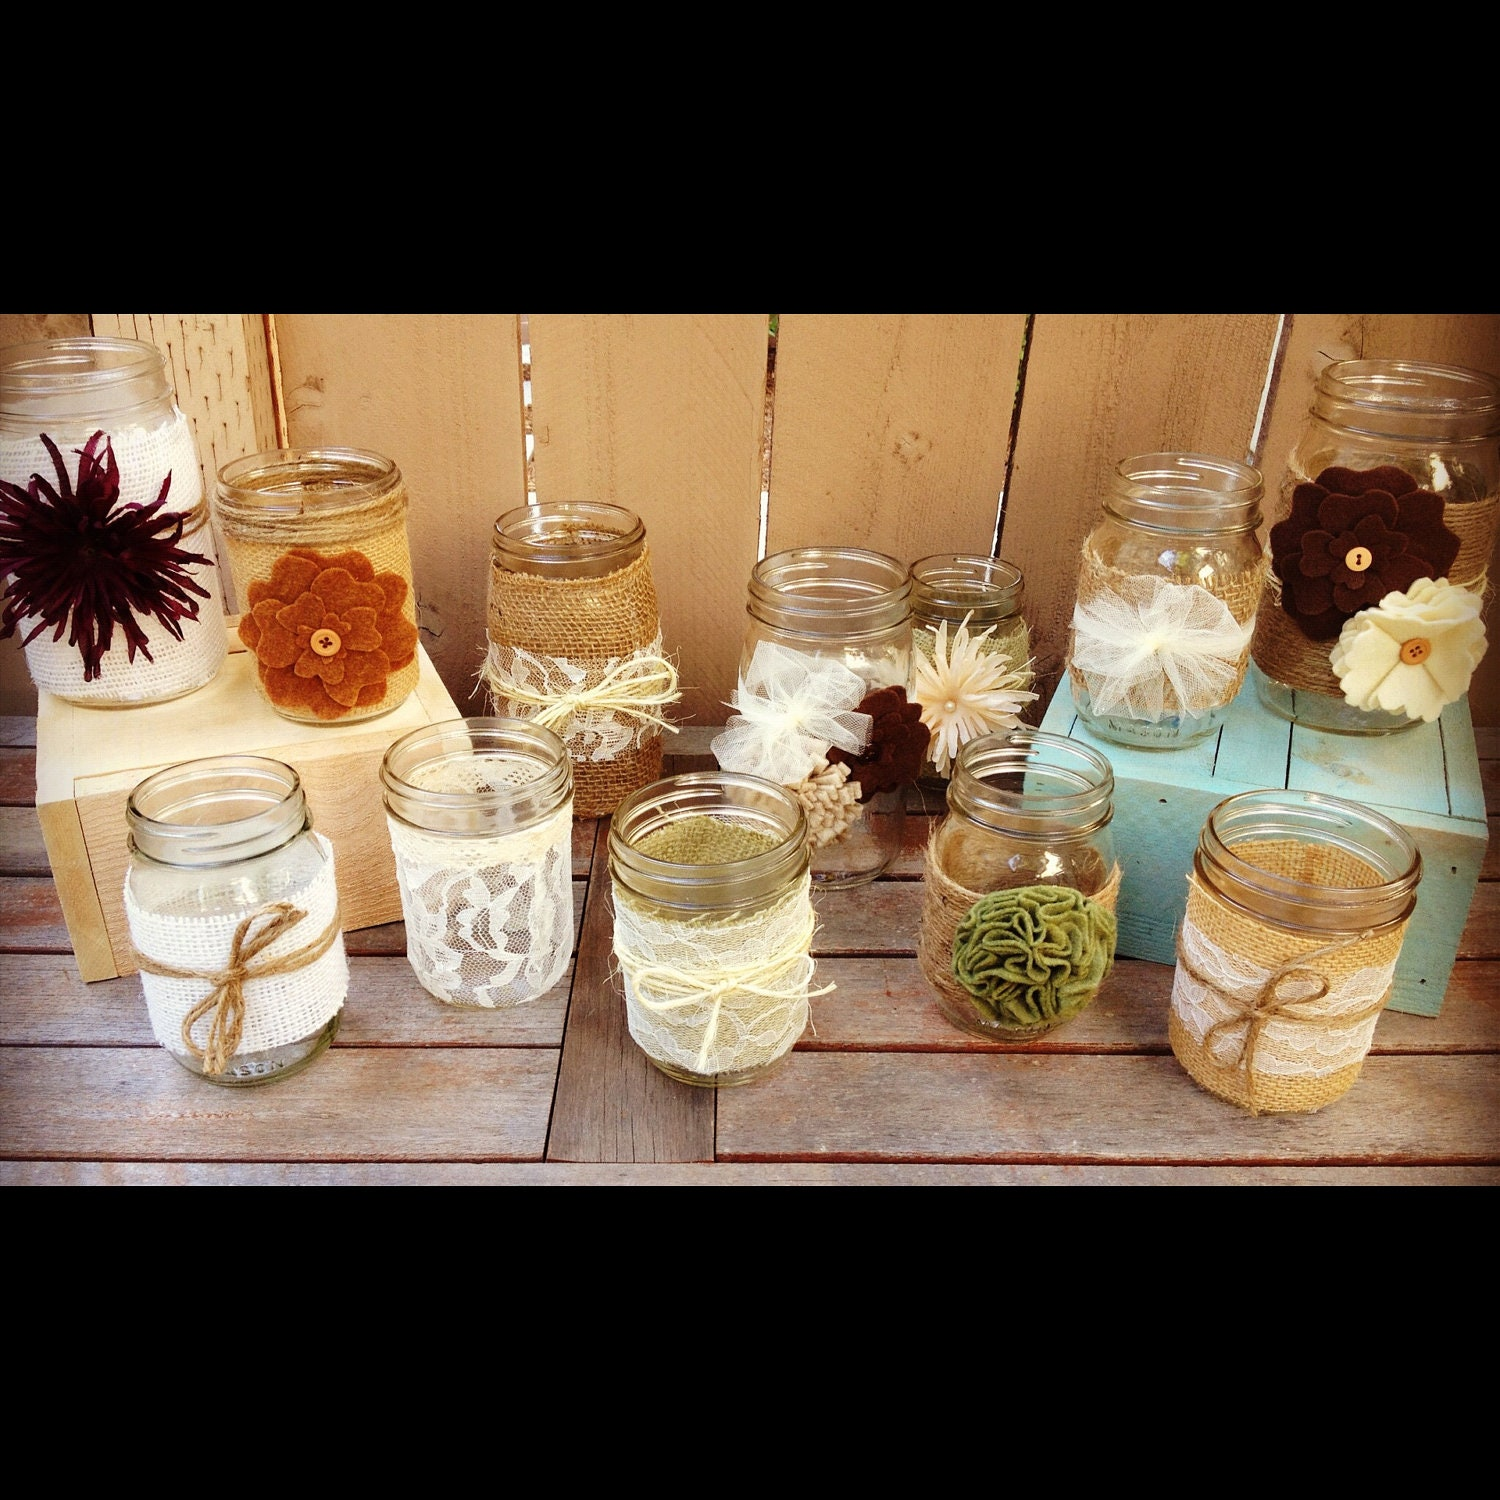 baby food jars jars centerpieces jars candles jars. Black Bedroom Furniture Sets. Home Design Ideas